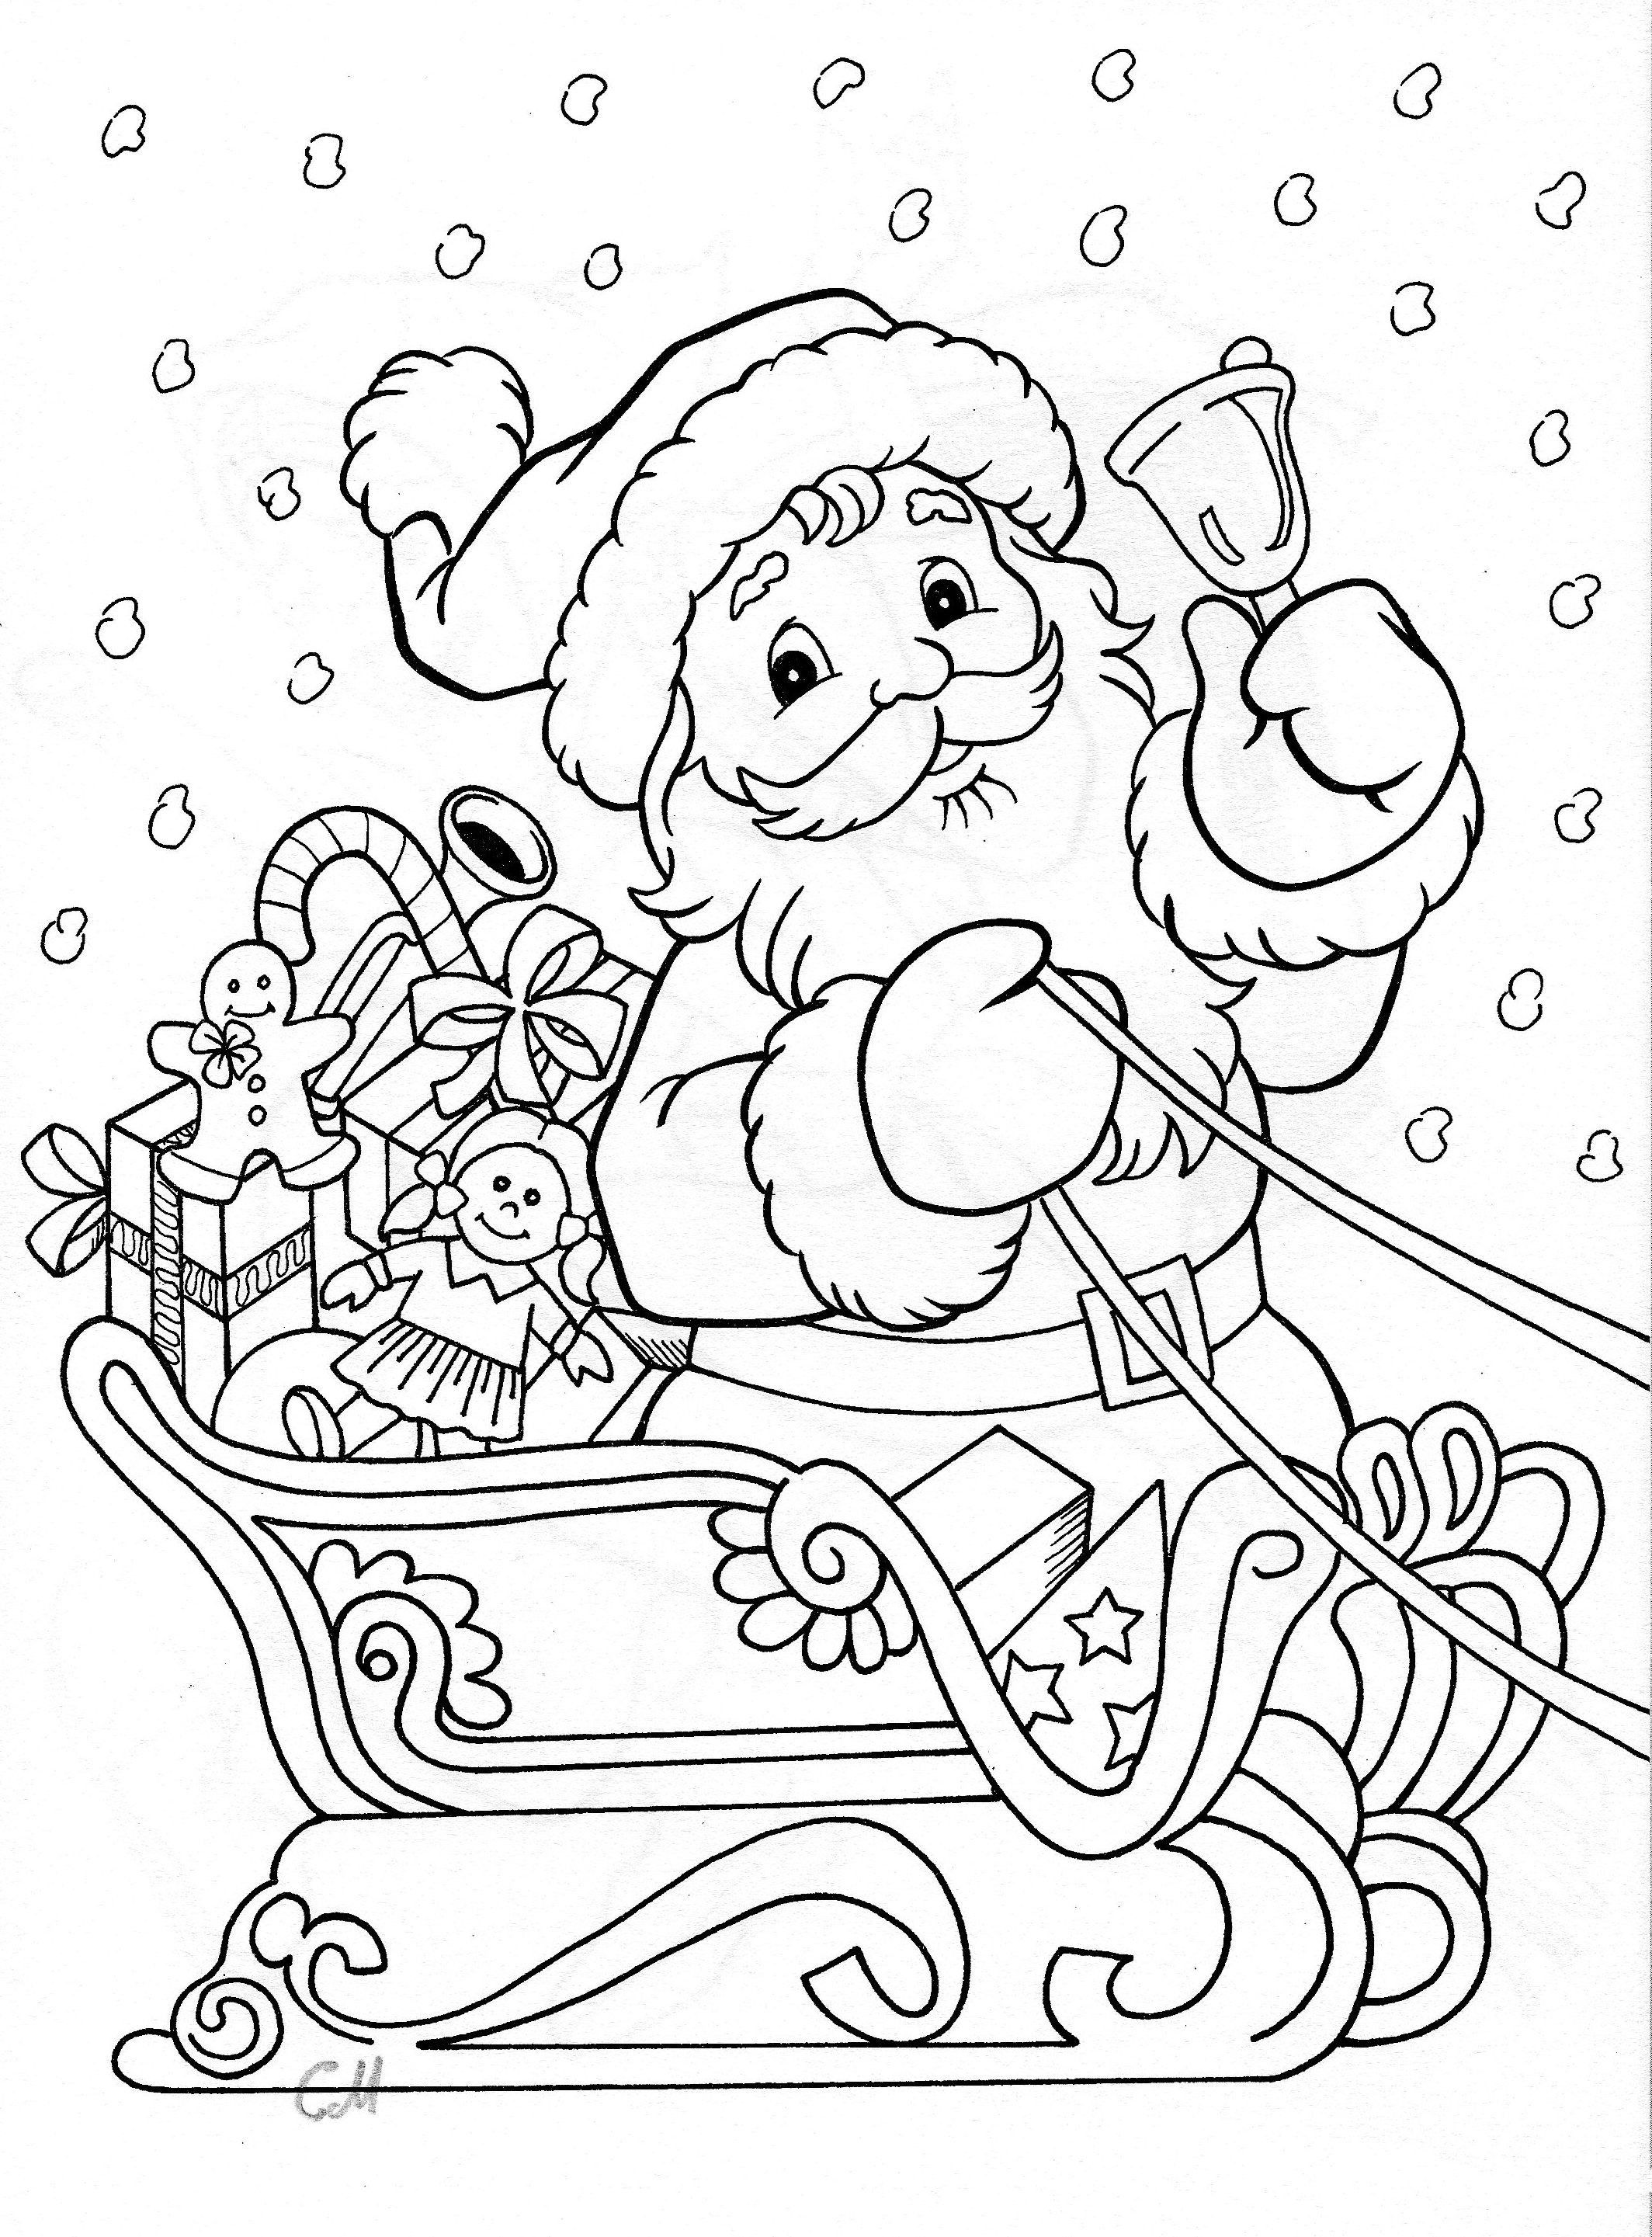 New Father Christmas Colouring Pages Coloring Coloringpages Coloringpagesf Santa Coloring Pages Christmas Coloring Sheets Printable Christmas Coloring Pages